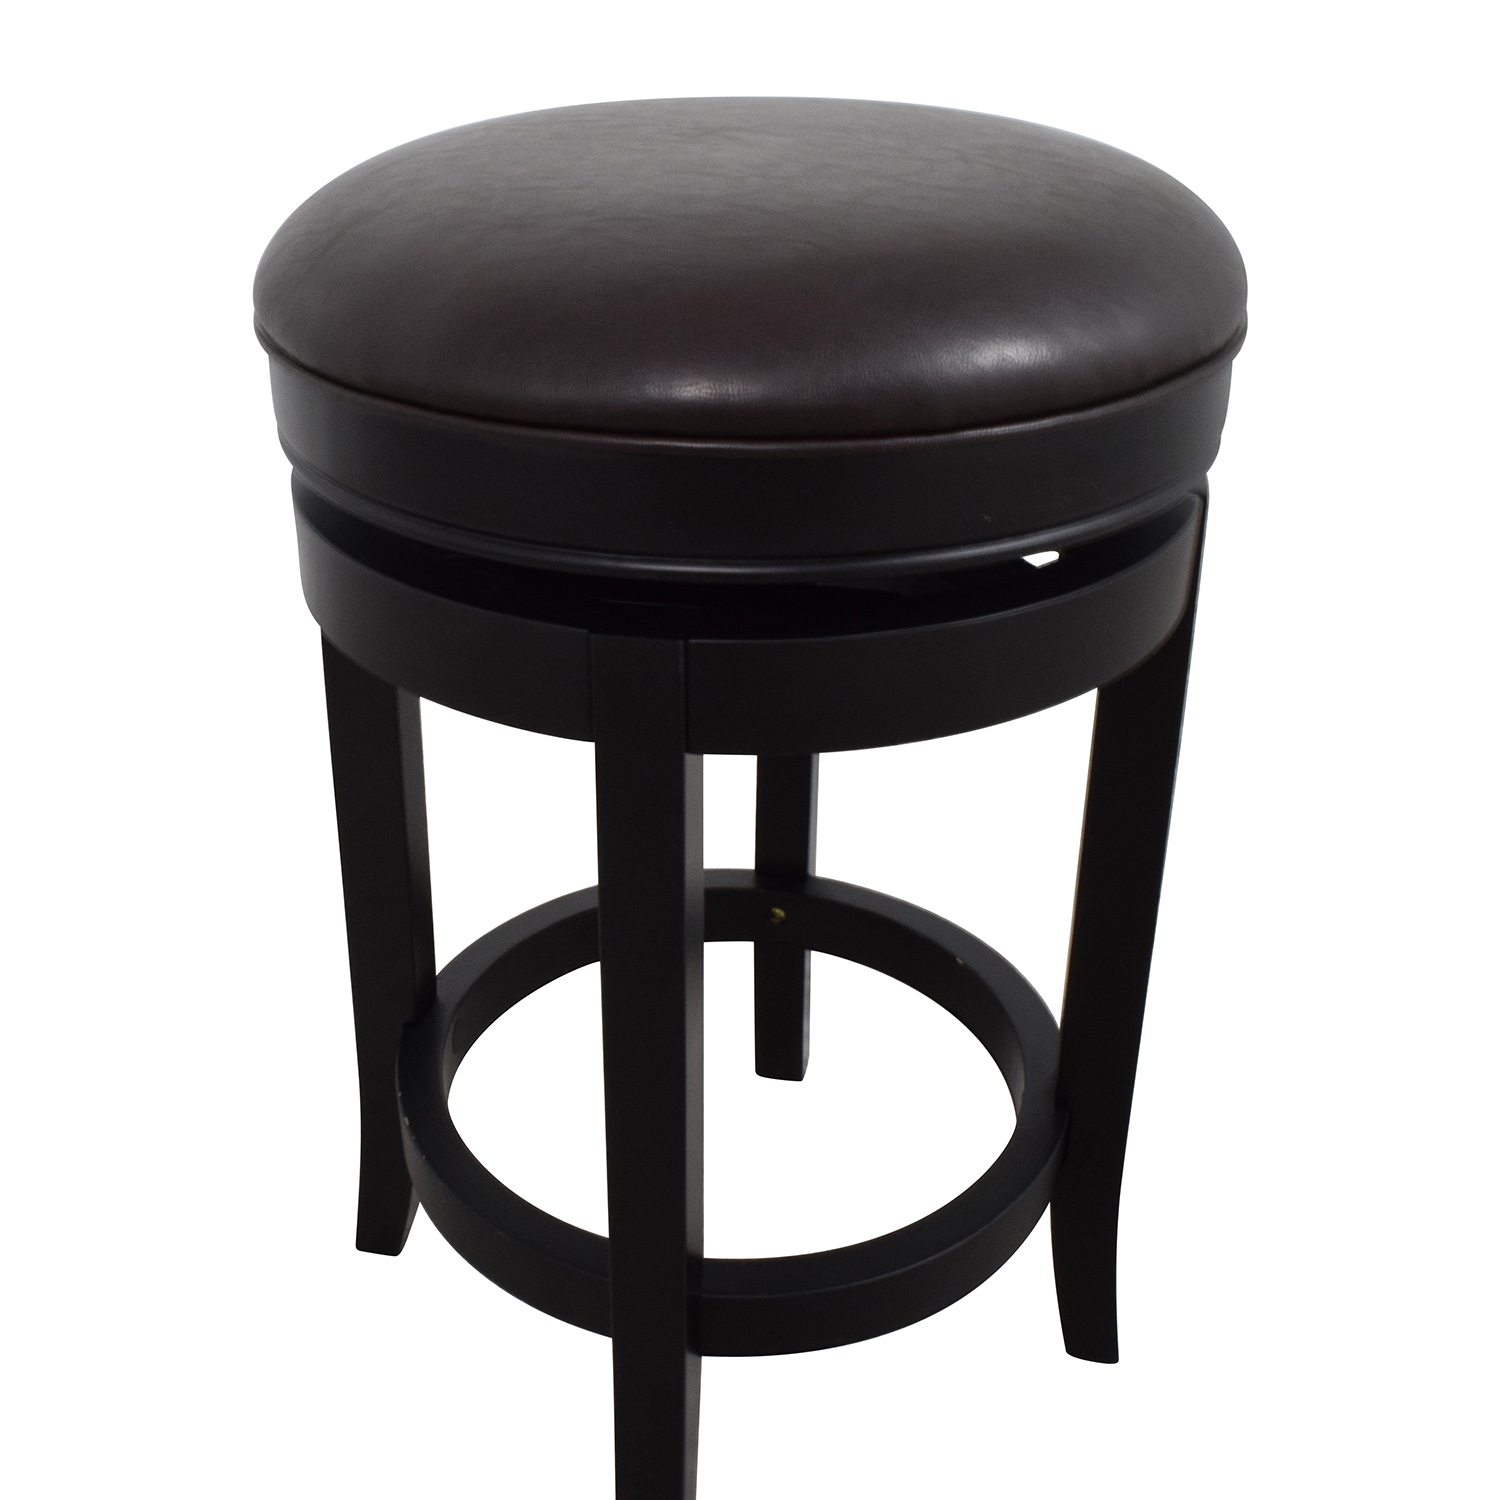 88 off inmod inmod cedric round backless bar stool chairs for In mod furniture